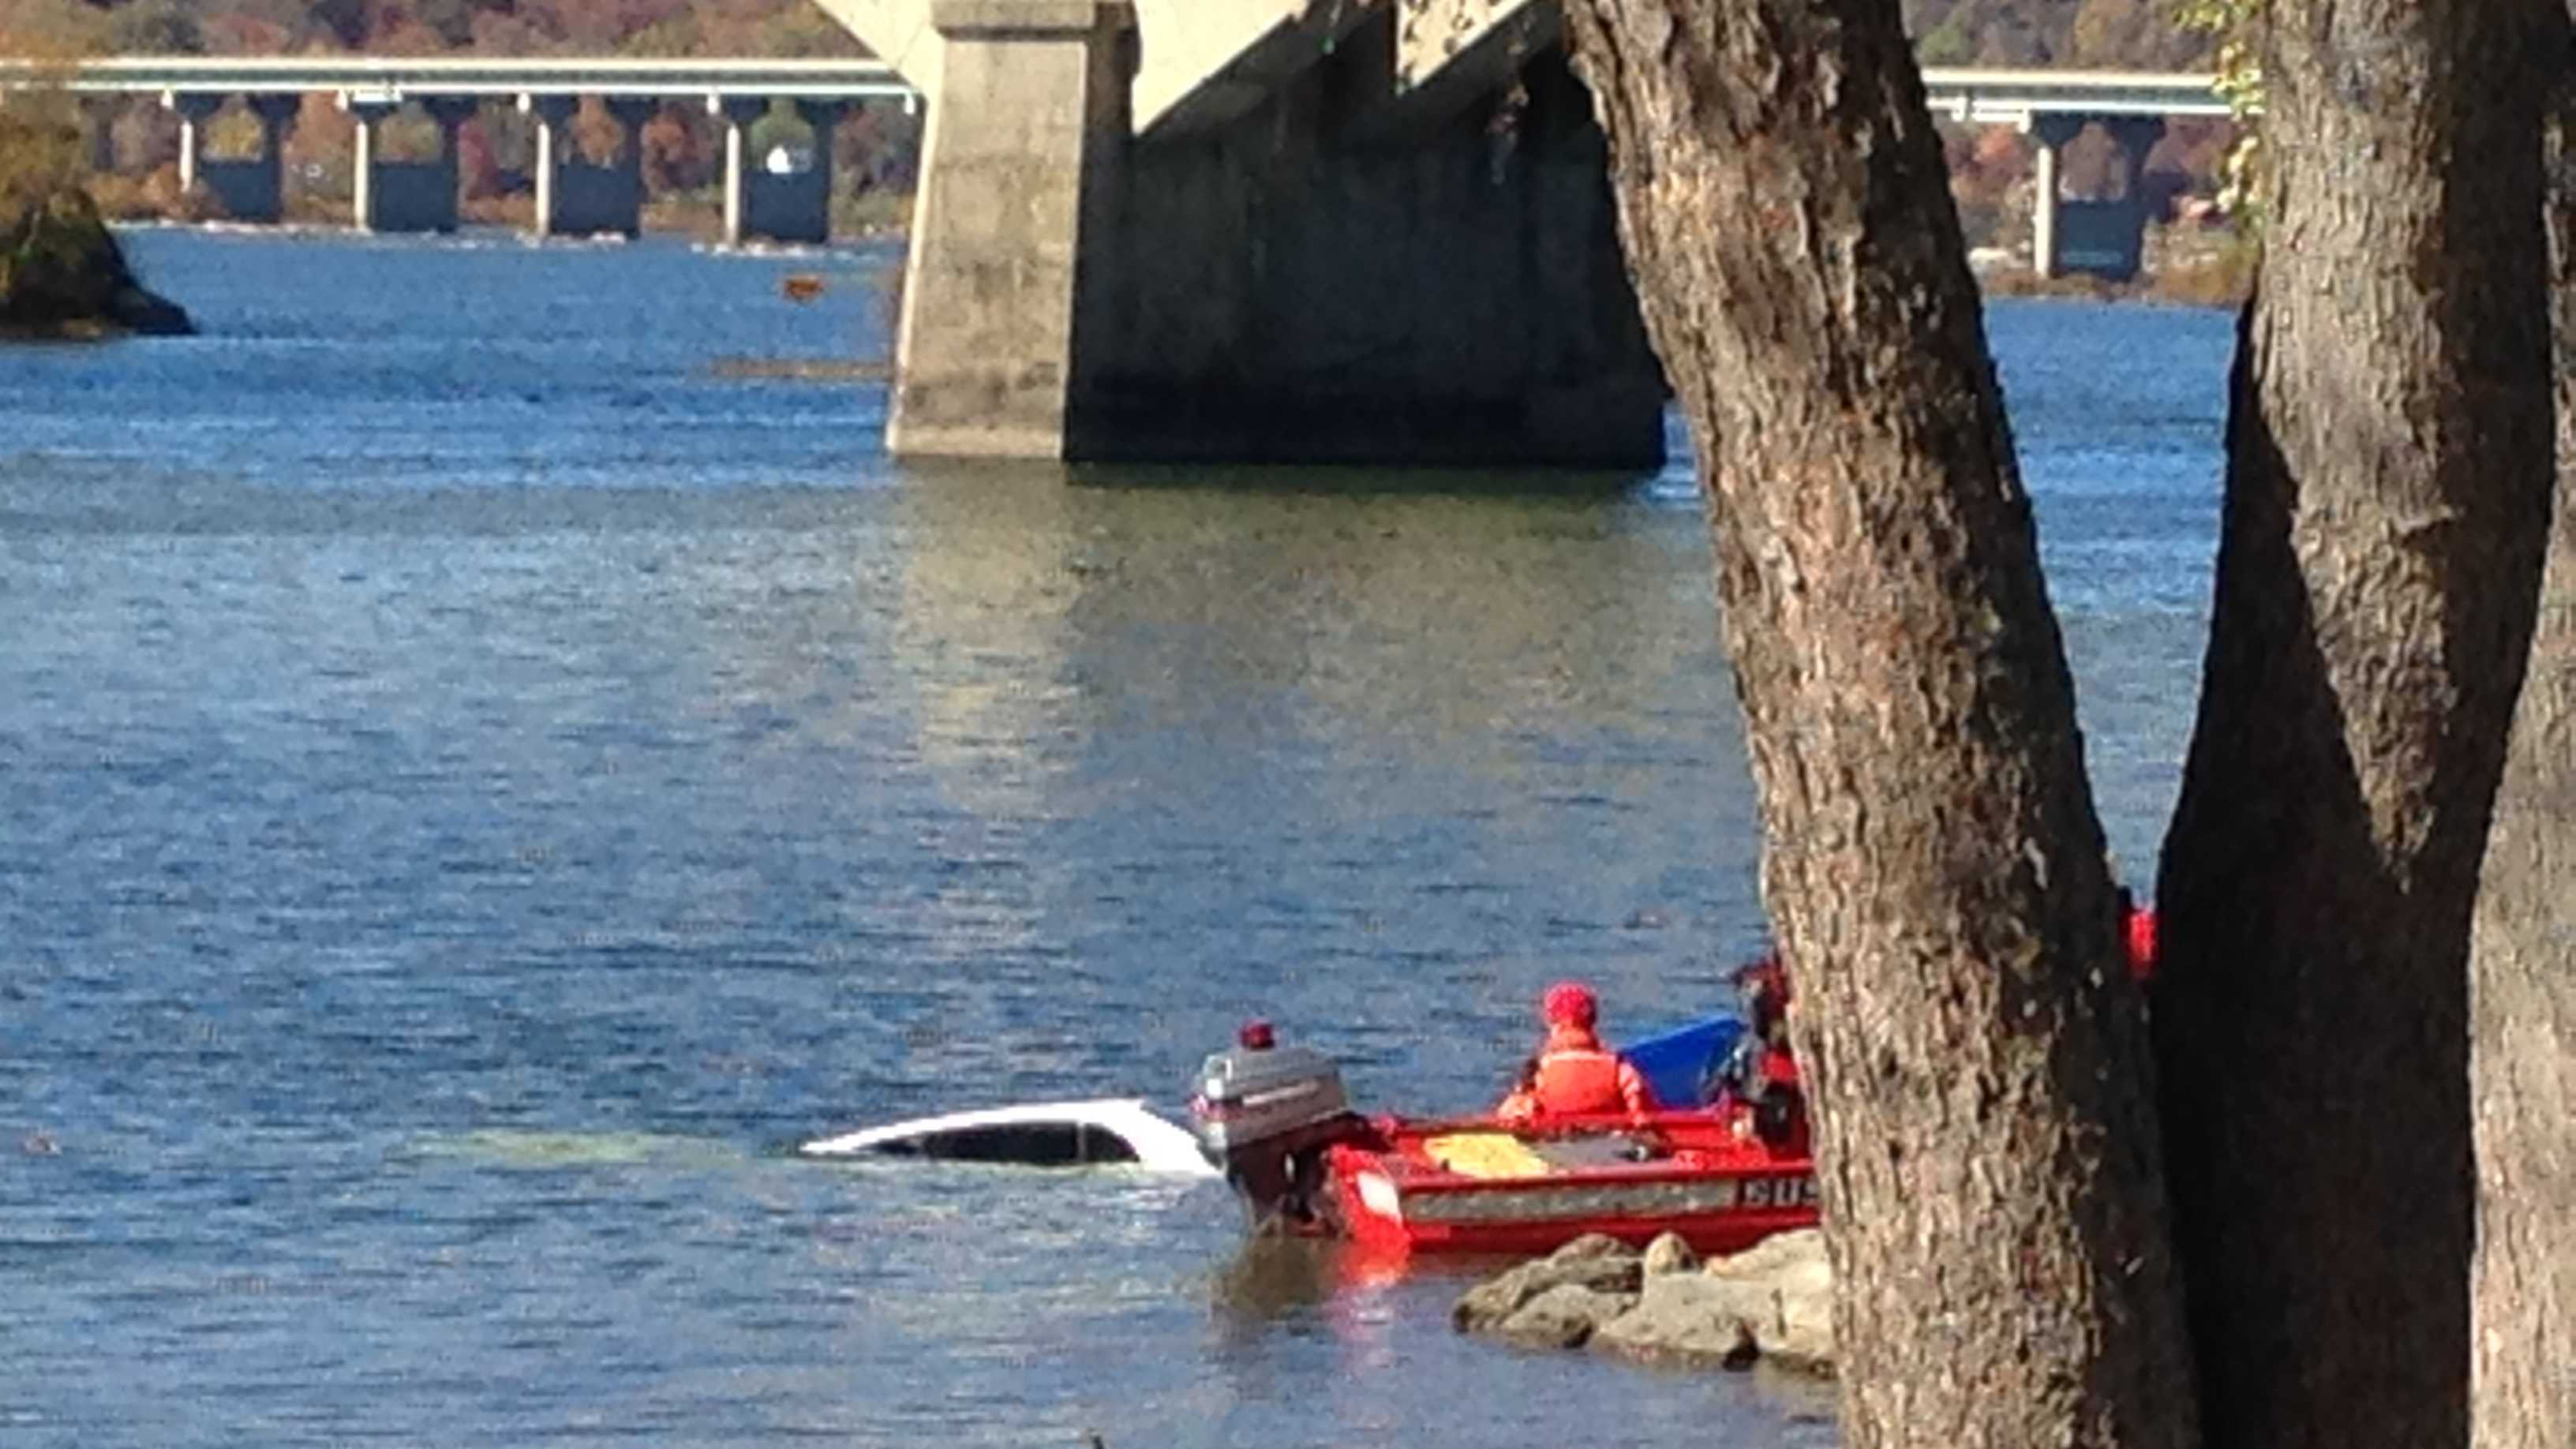 Vehicle in river